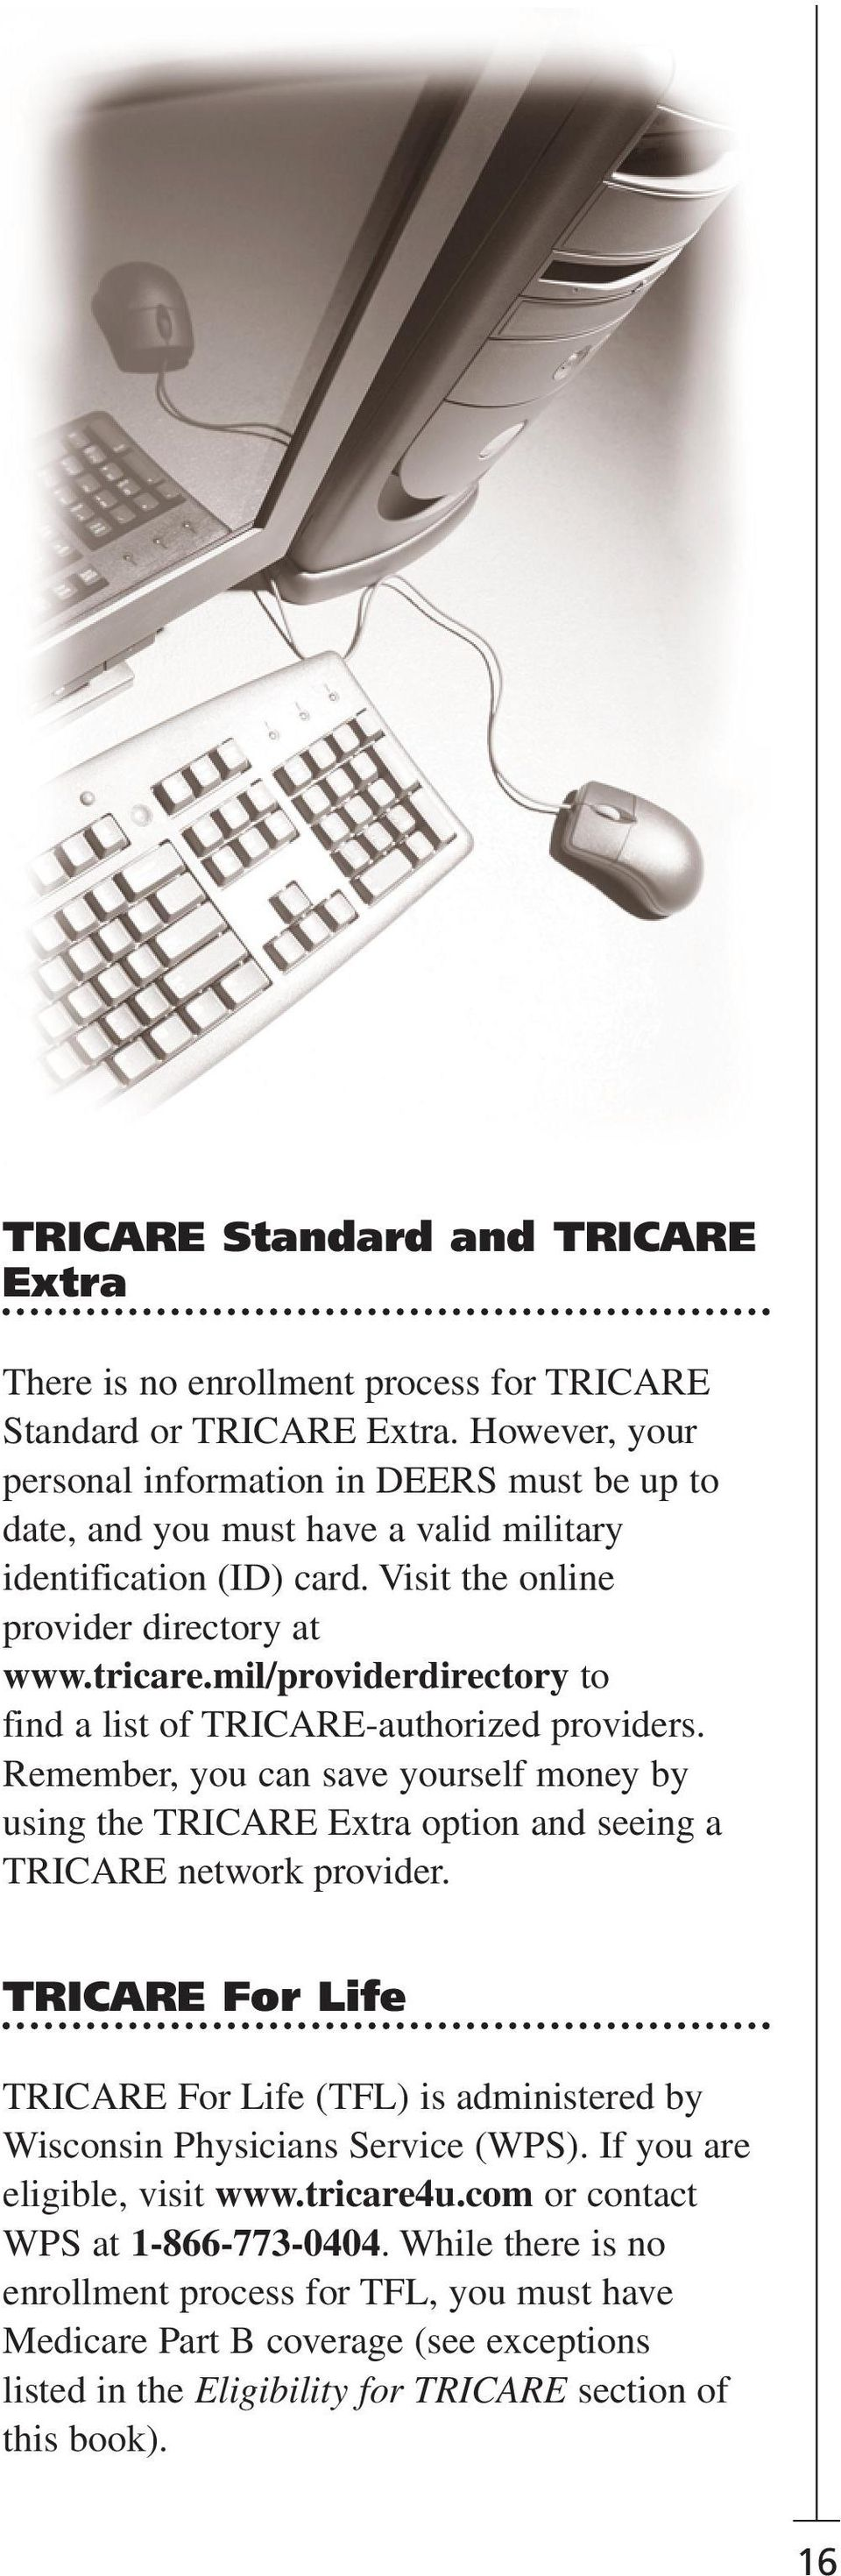 mil/providerdirectory to find a list of TRICARE-authorized providers. Remember, you can save yourself money by using the TRICARE Extra option and seeing a TRICARE network provider.